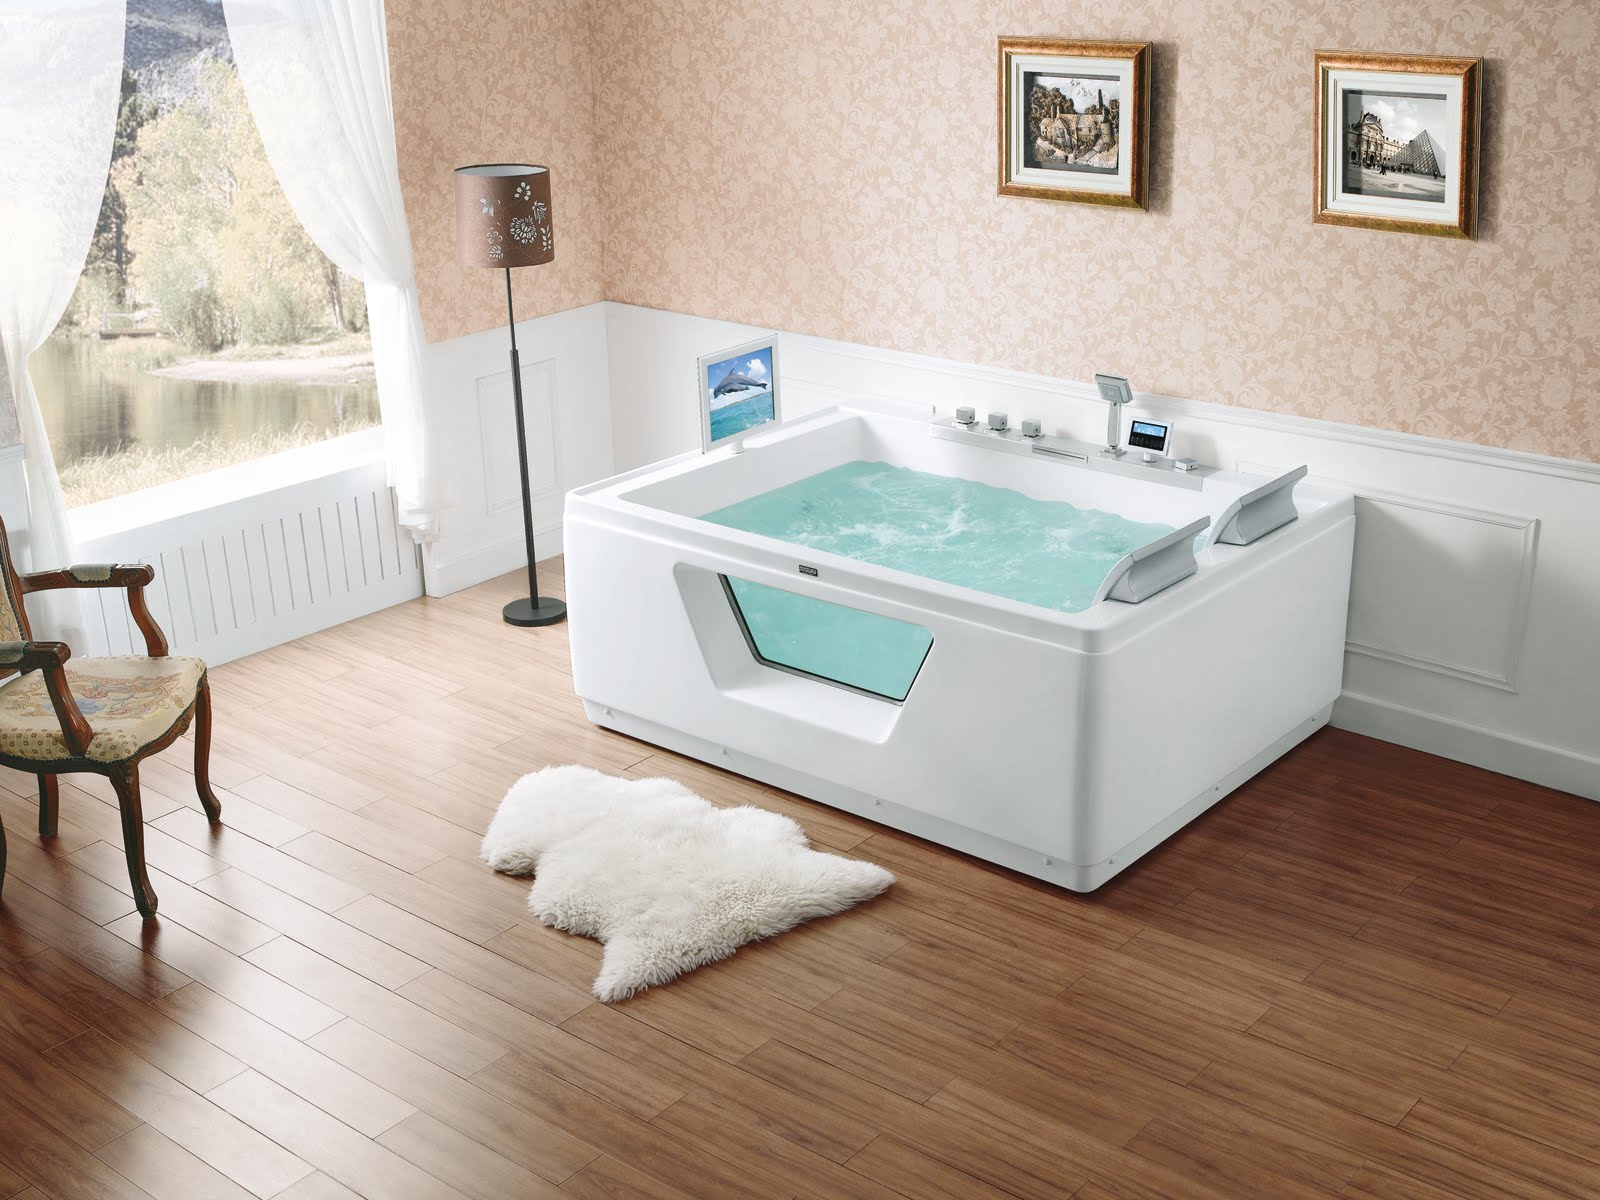 Luxury Whirlpool Baths From Ssww